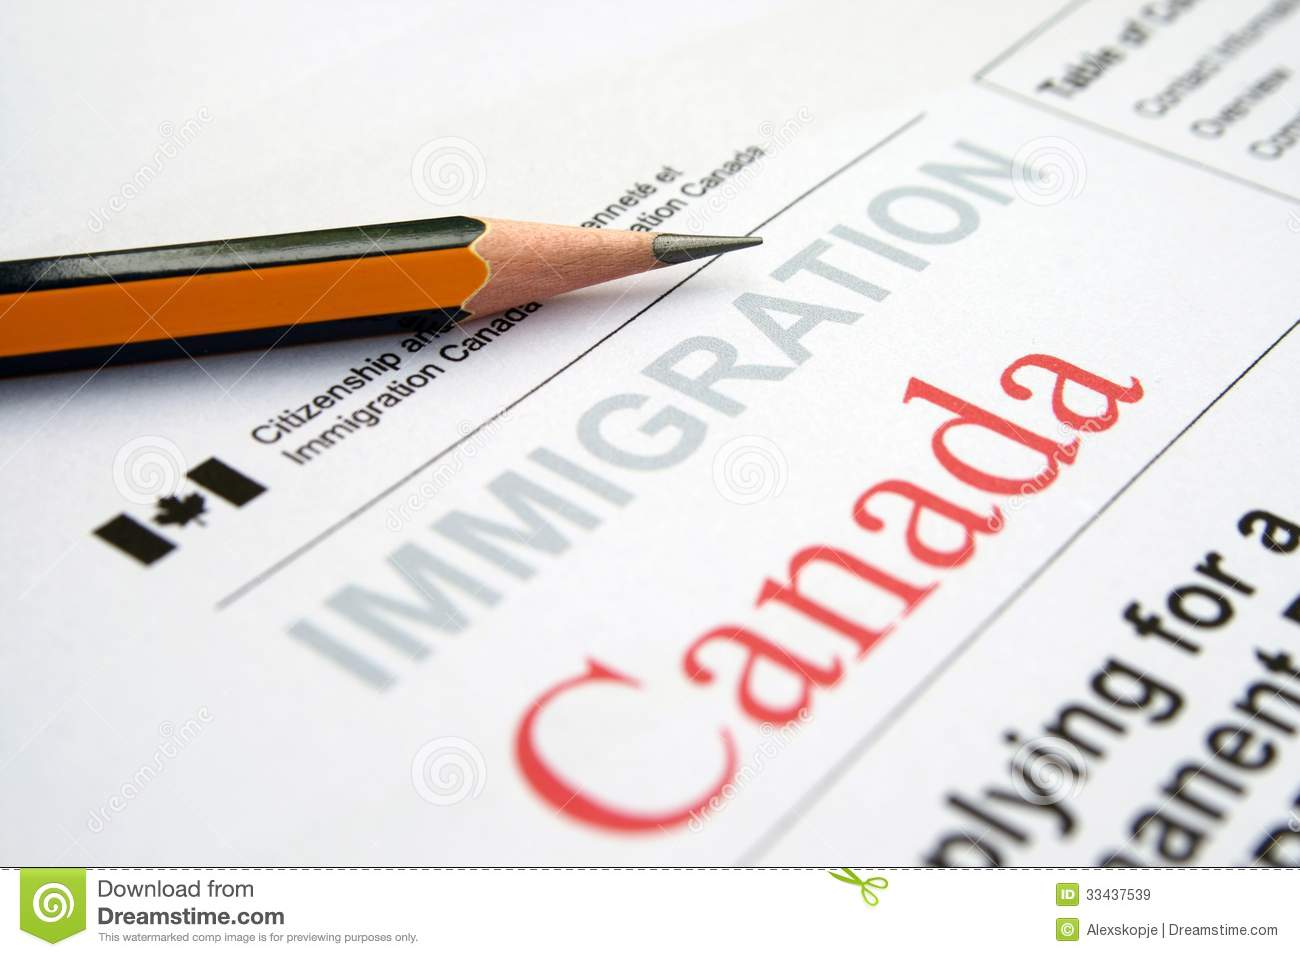 Immigration clipart canada immigration. Stock image of border free stock